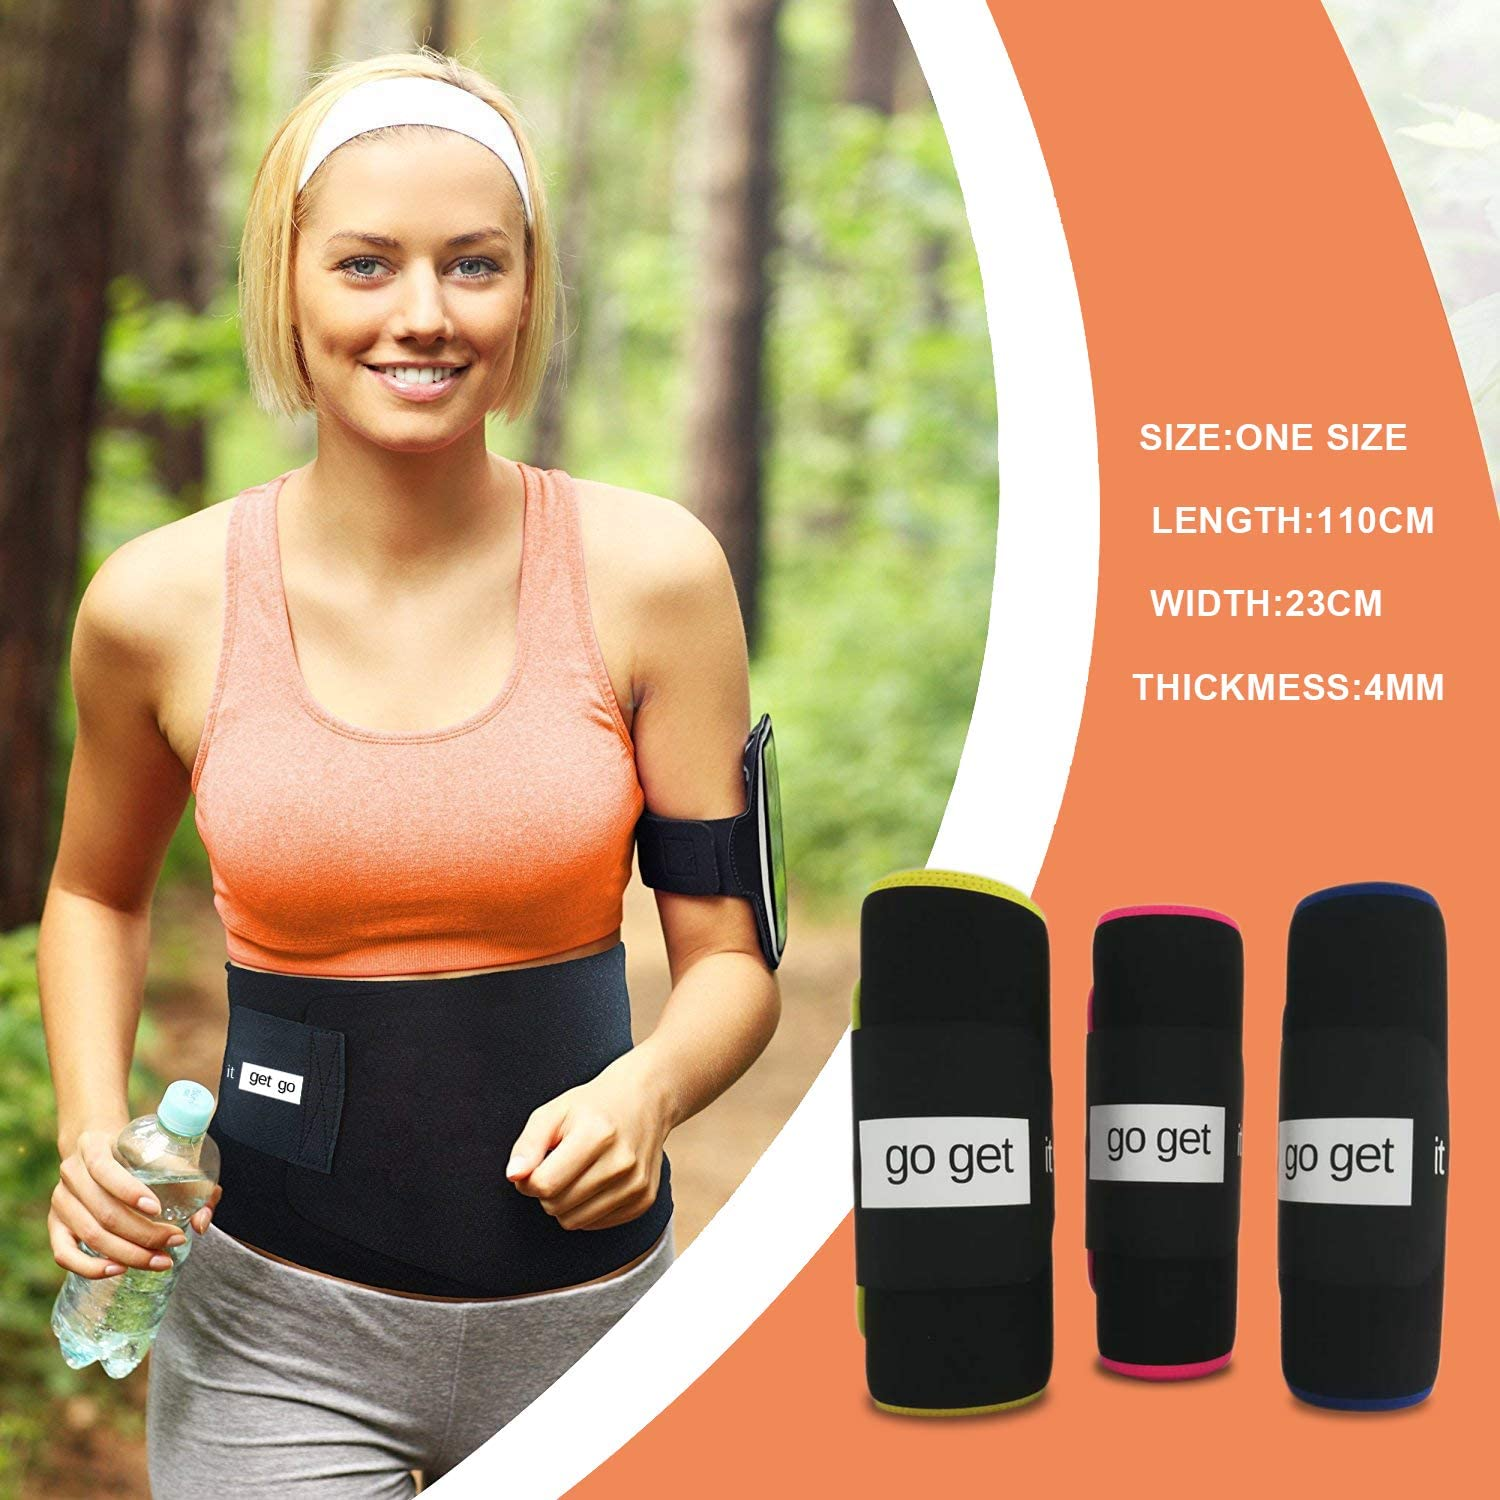 Go Get it Waist Trimmer Belt for Men & Women, Promotes Sweat & Weight Loss in mid Section with Sauna Effect, Best Trainer Belt Pink